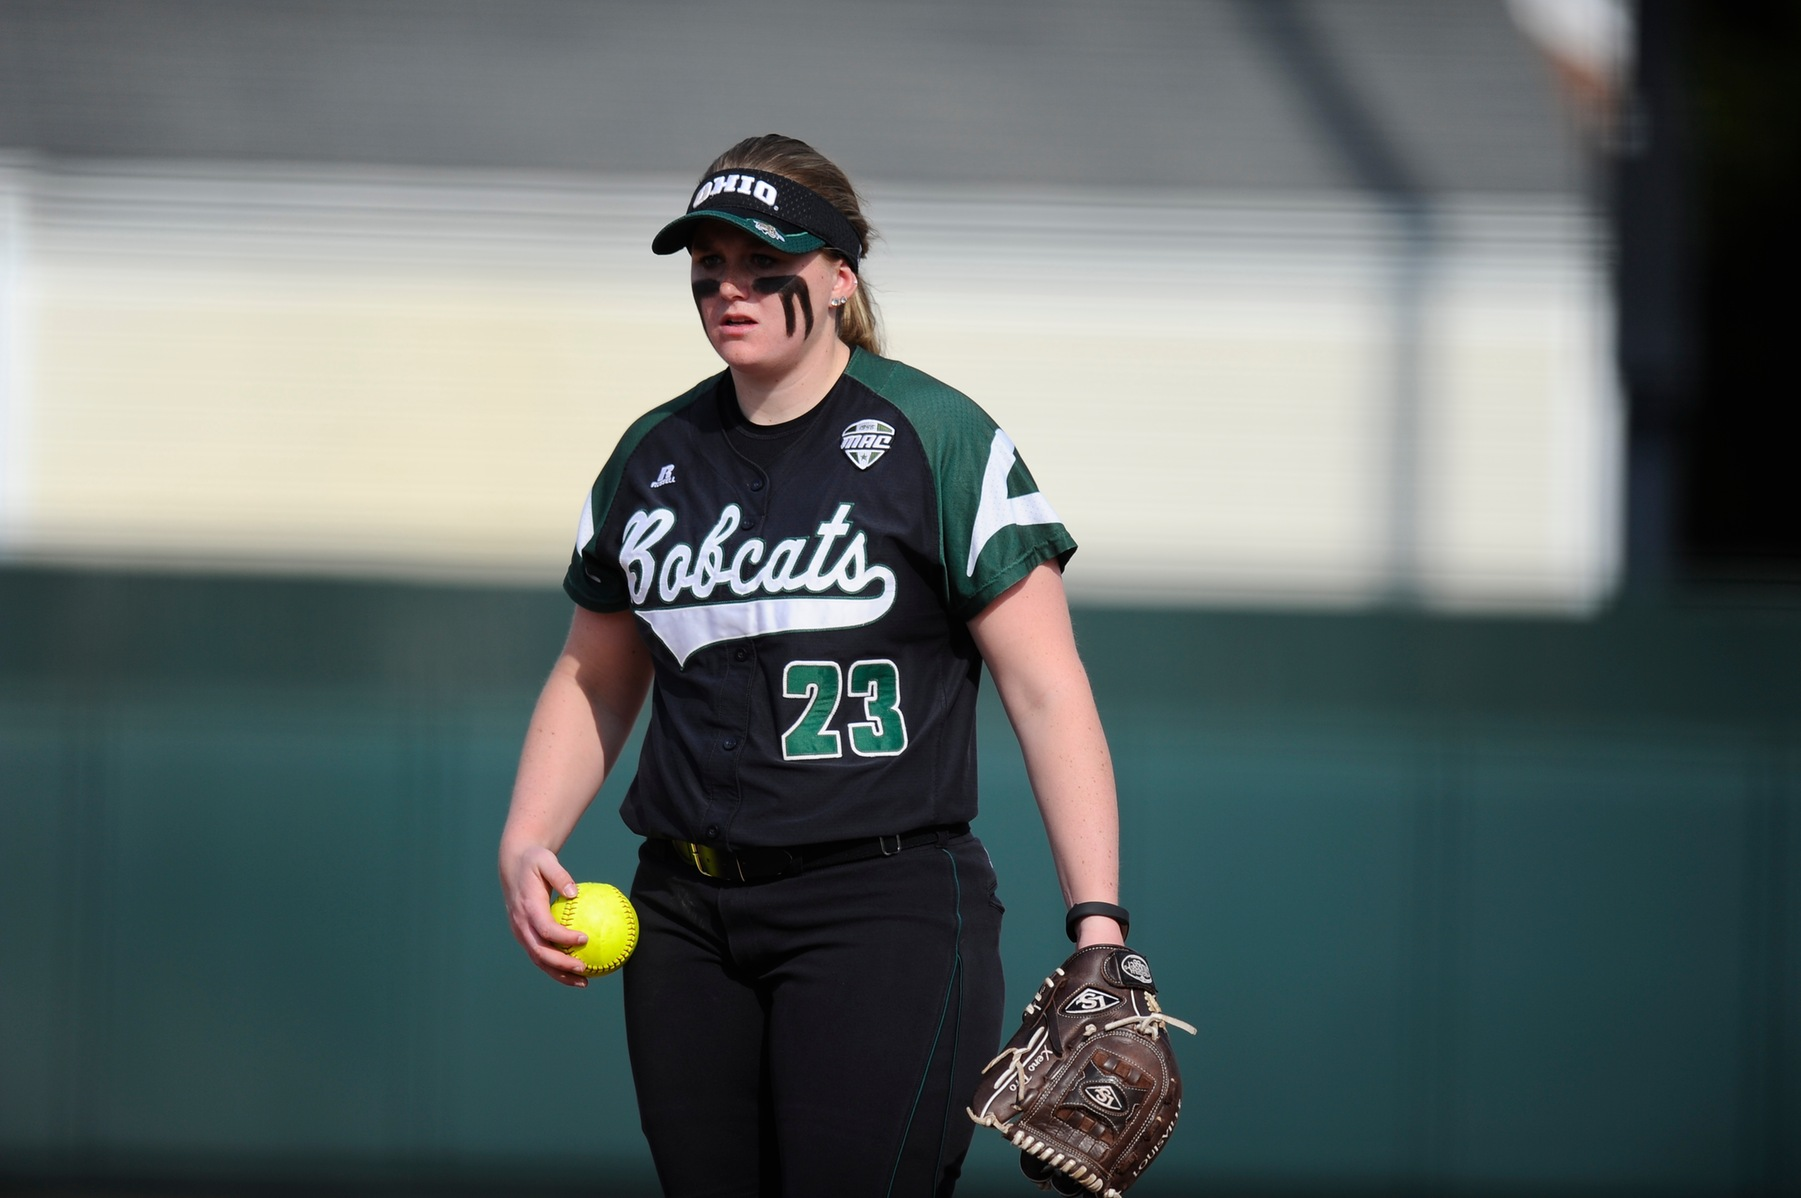 Ohio Softball Opens 2018 with Victories Over Virginia and UNCG